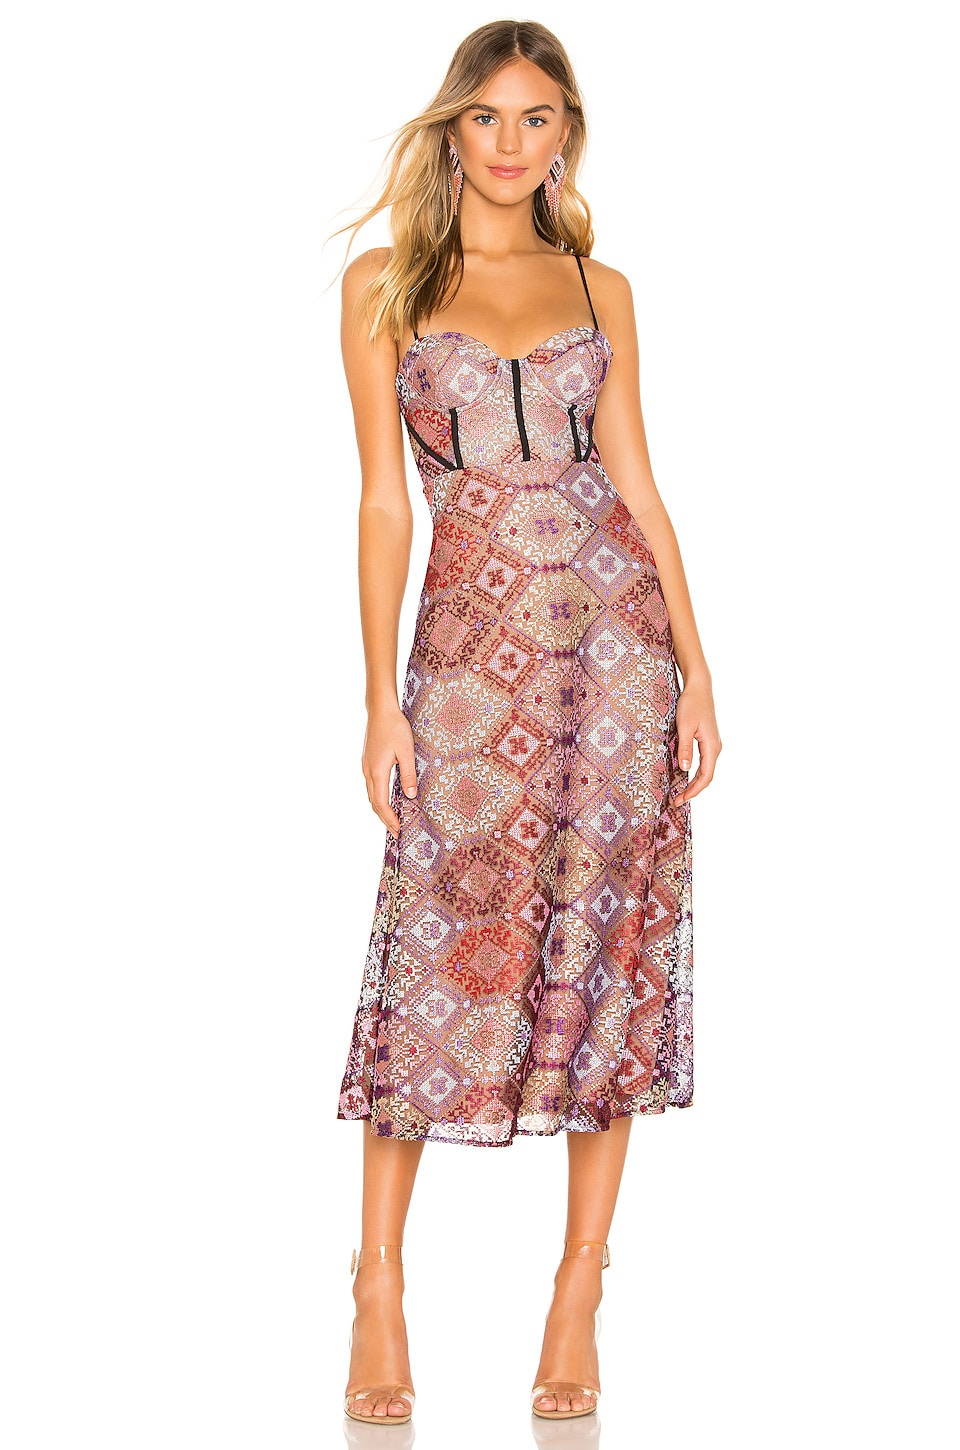 X by NBD Delylah Midi Dress in Pink & Red